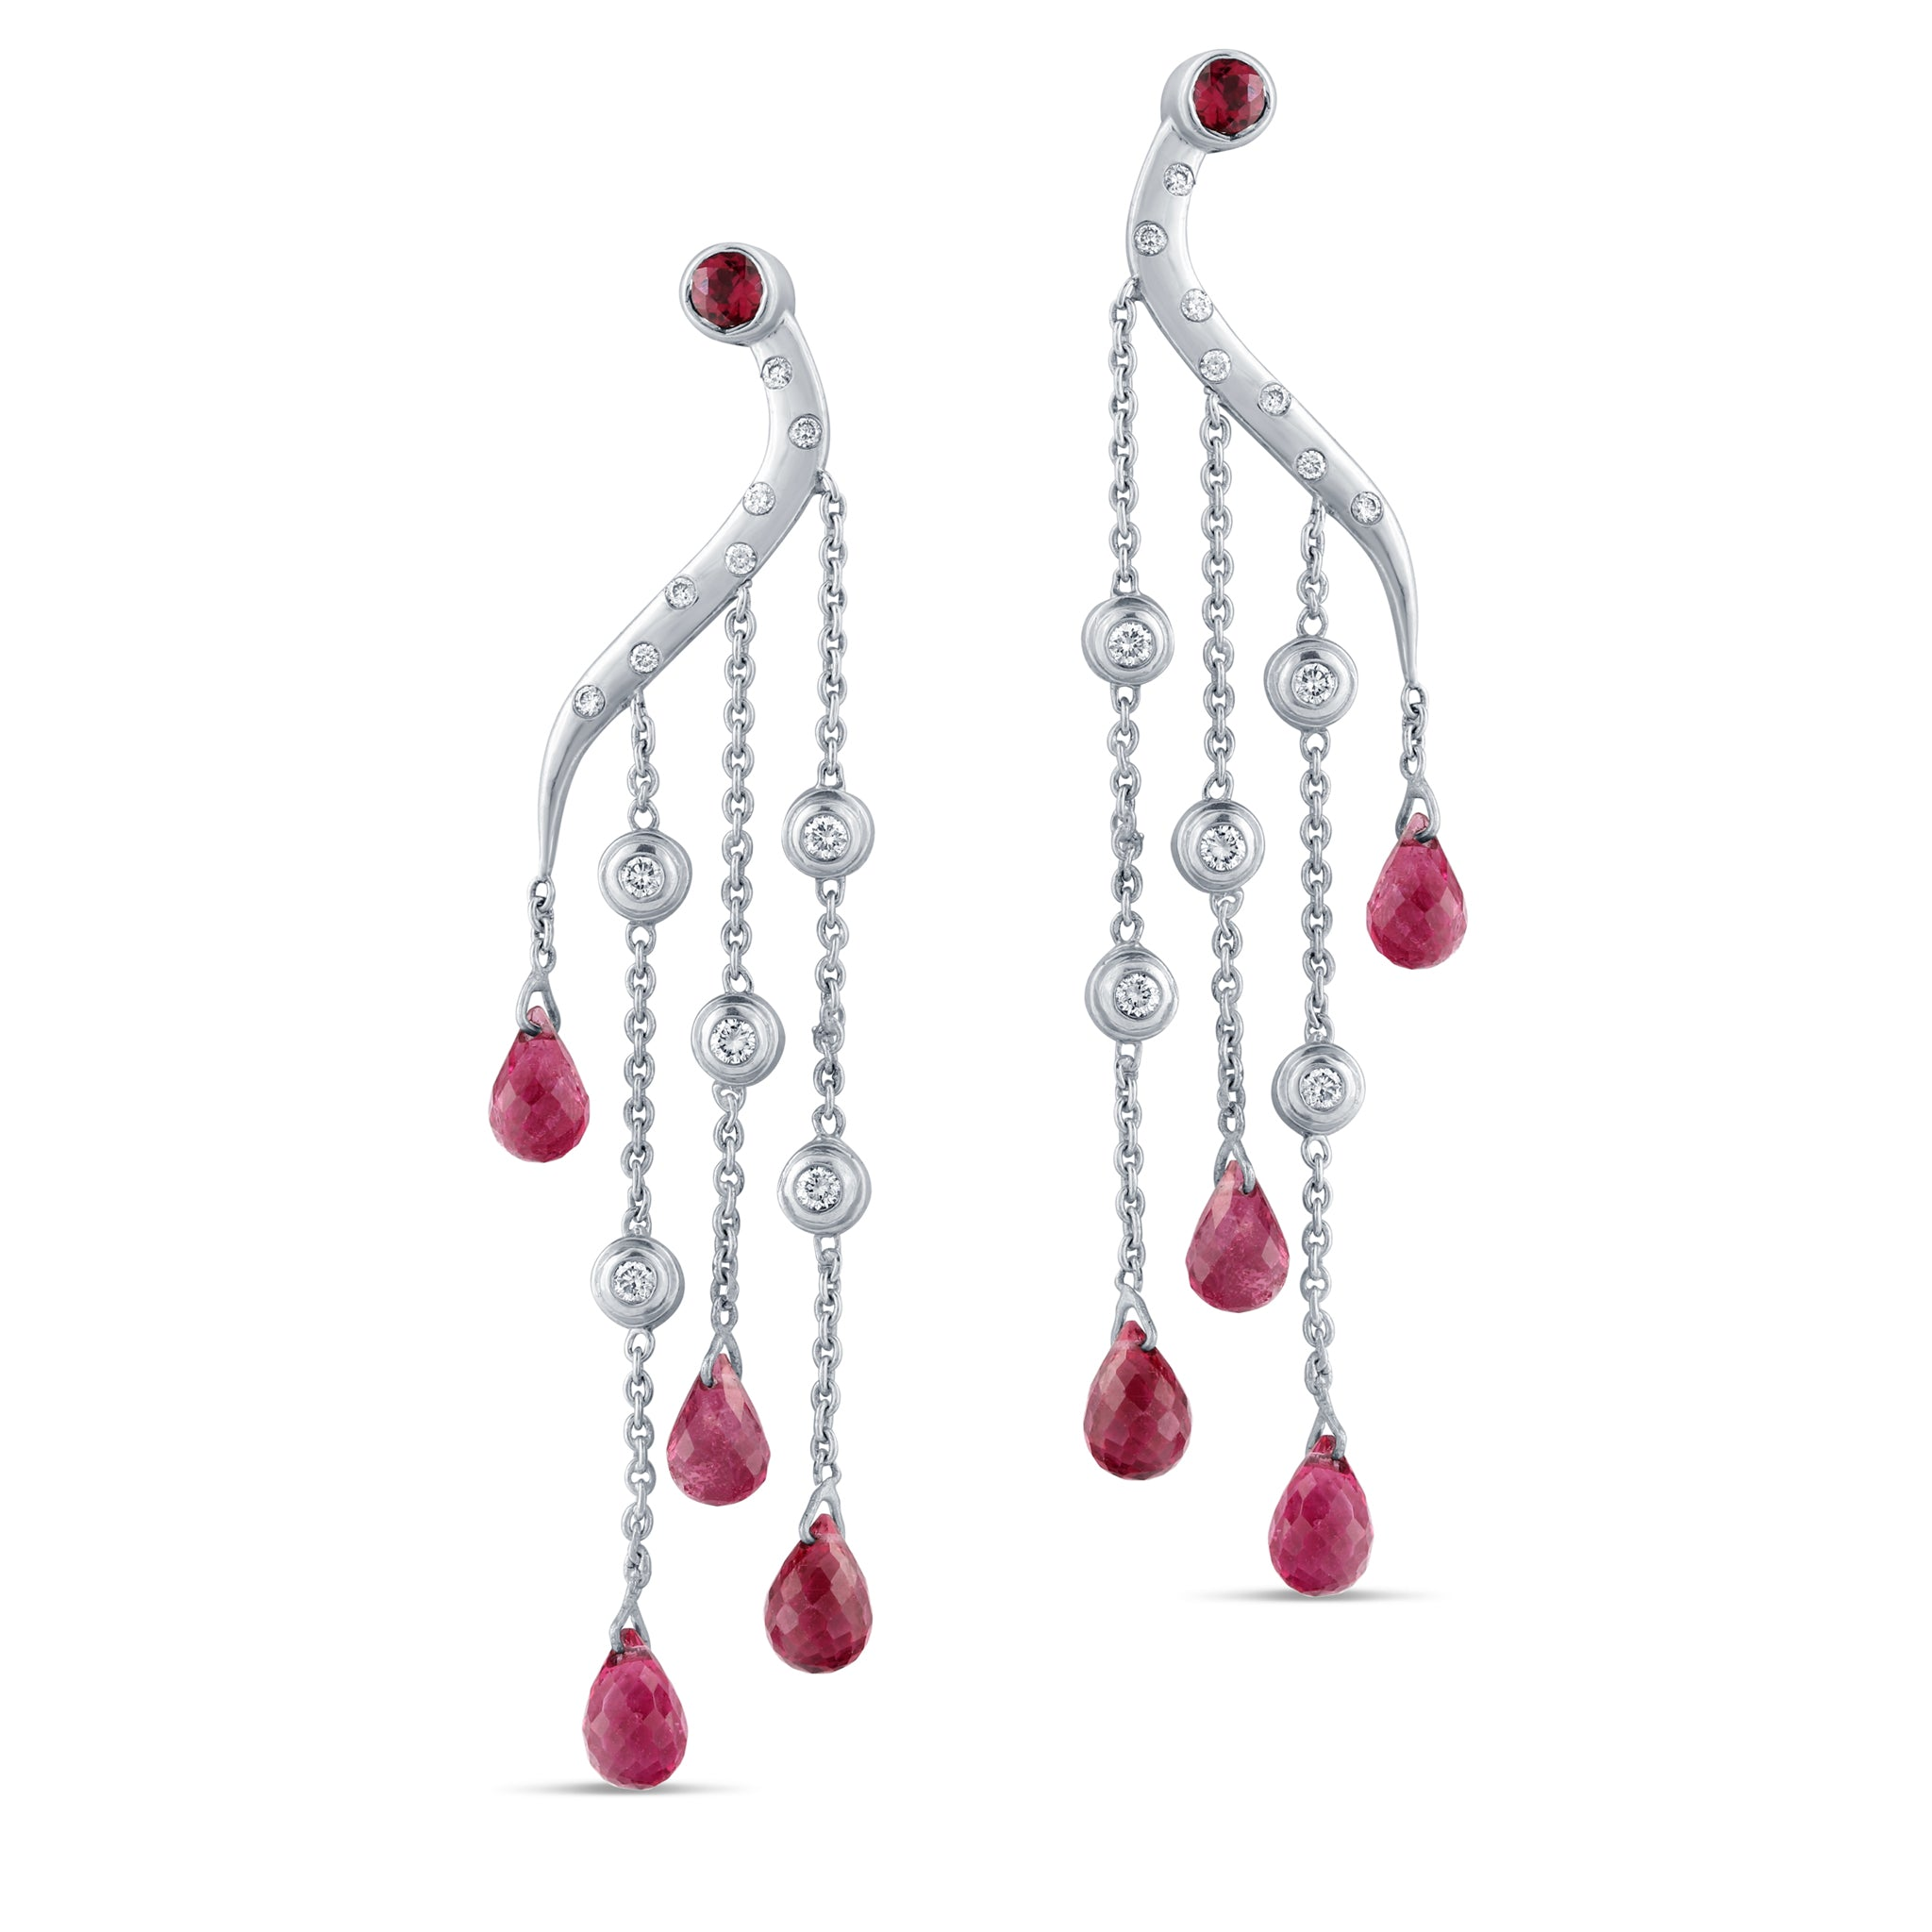 Pink Tourmaline and Diamond Briollett Earrings In 18K White Gold